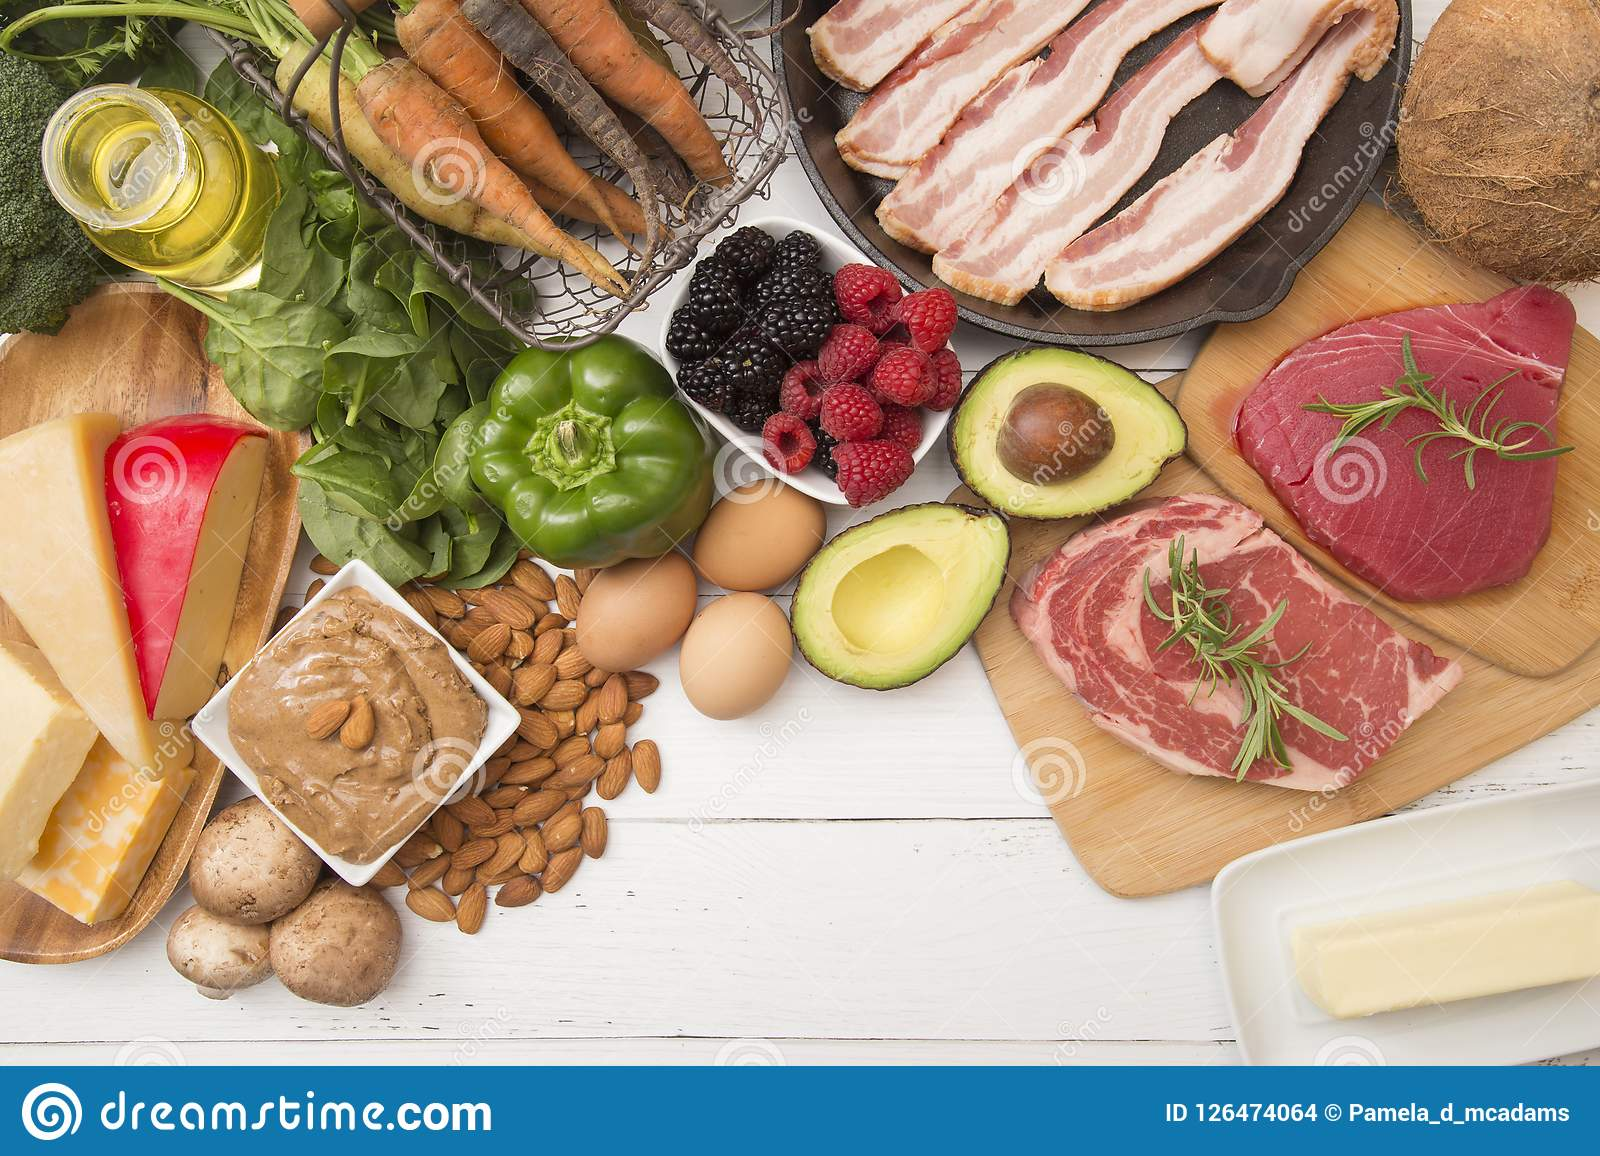 Various Foods that are Perfect for High Fat, Low Carb Diets